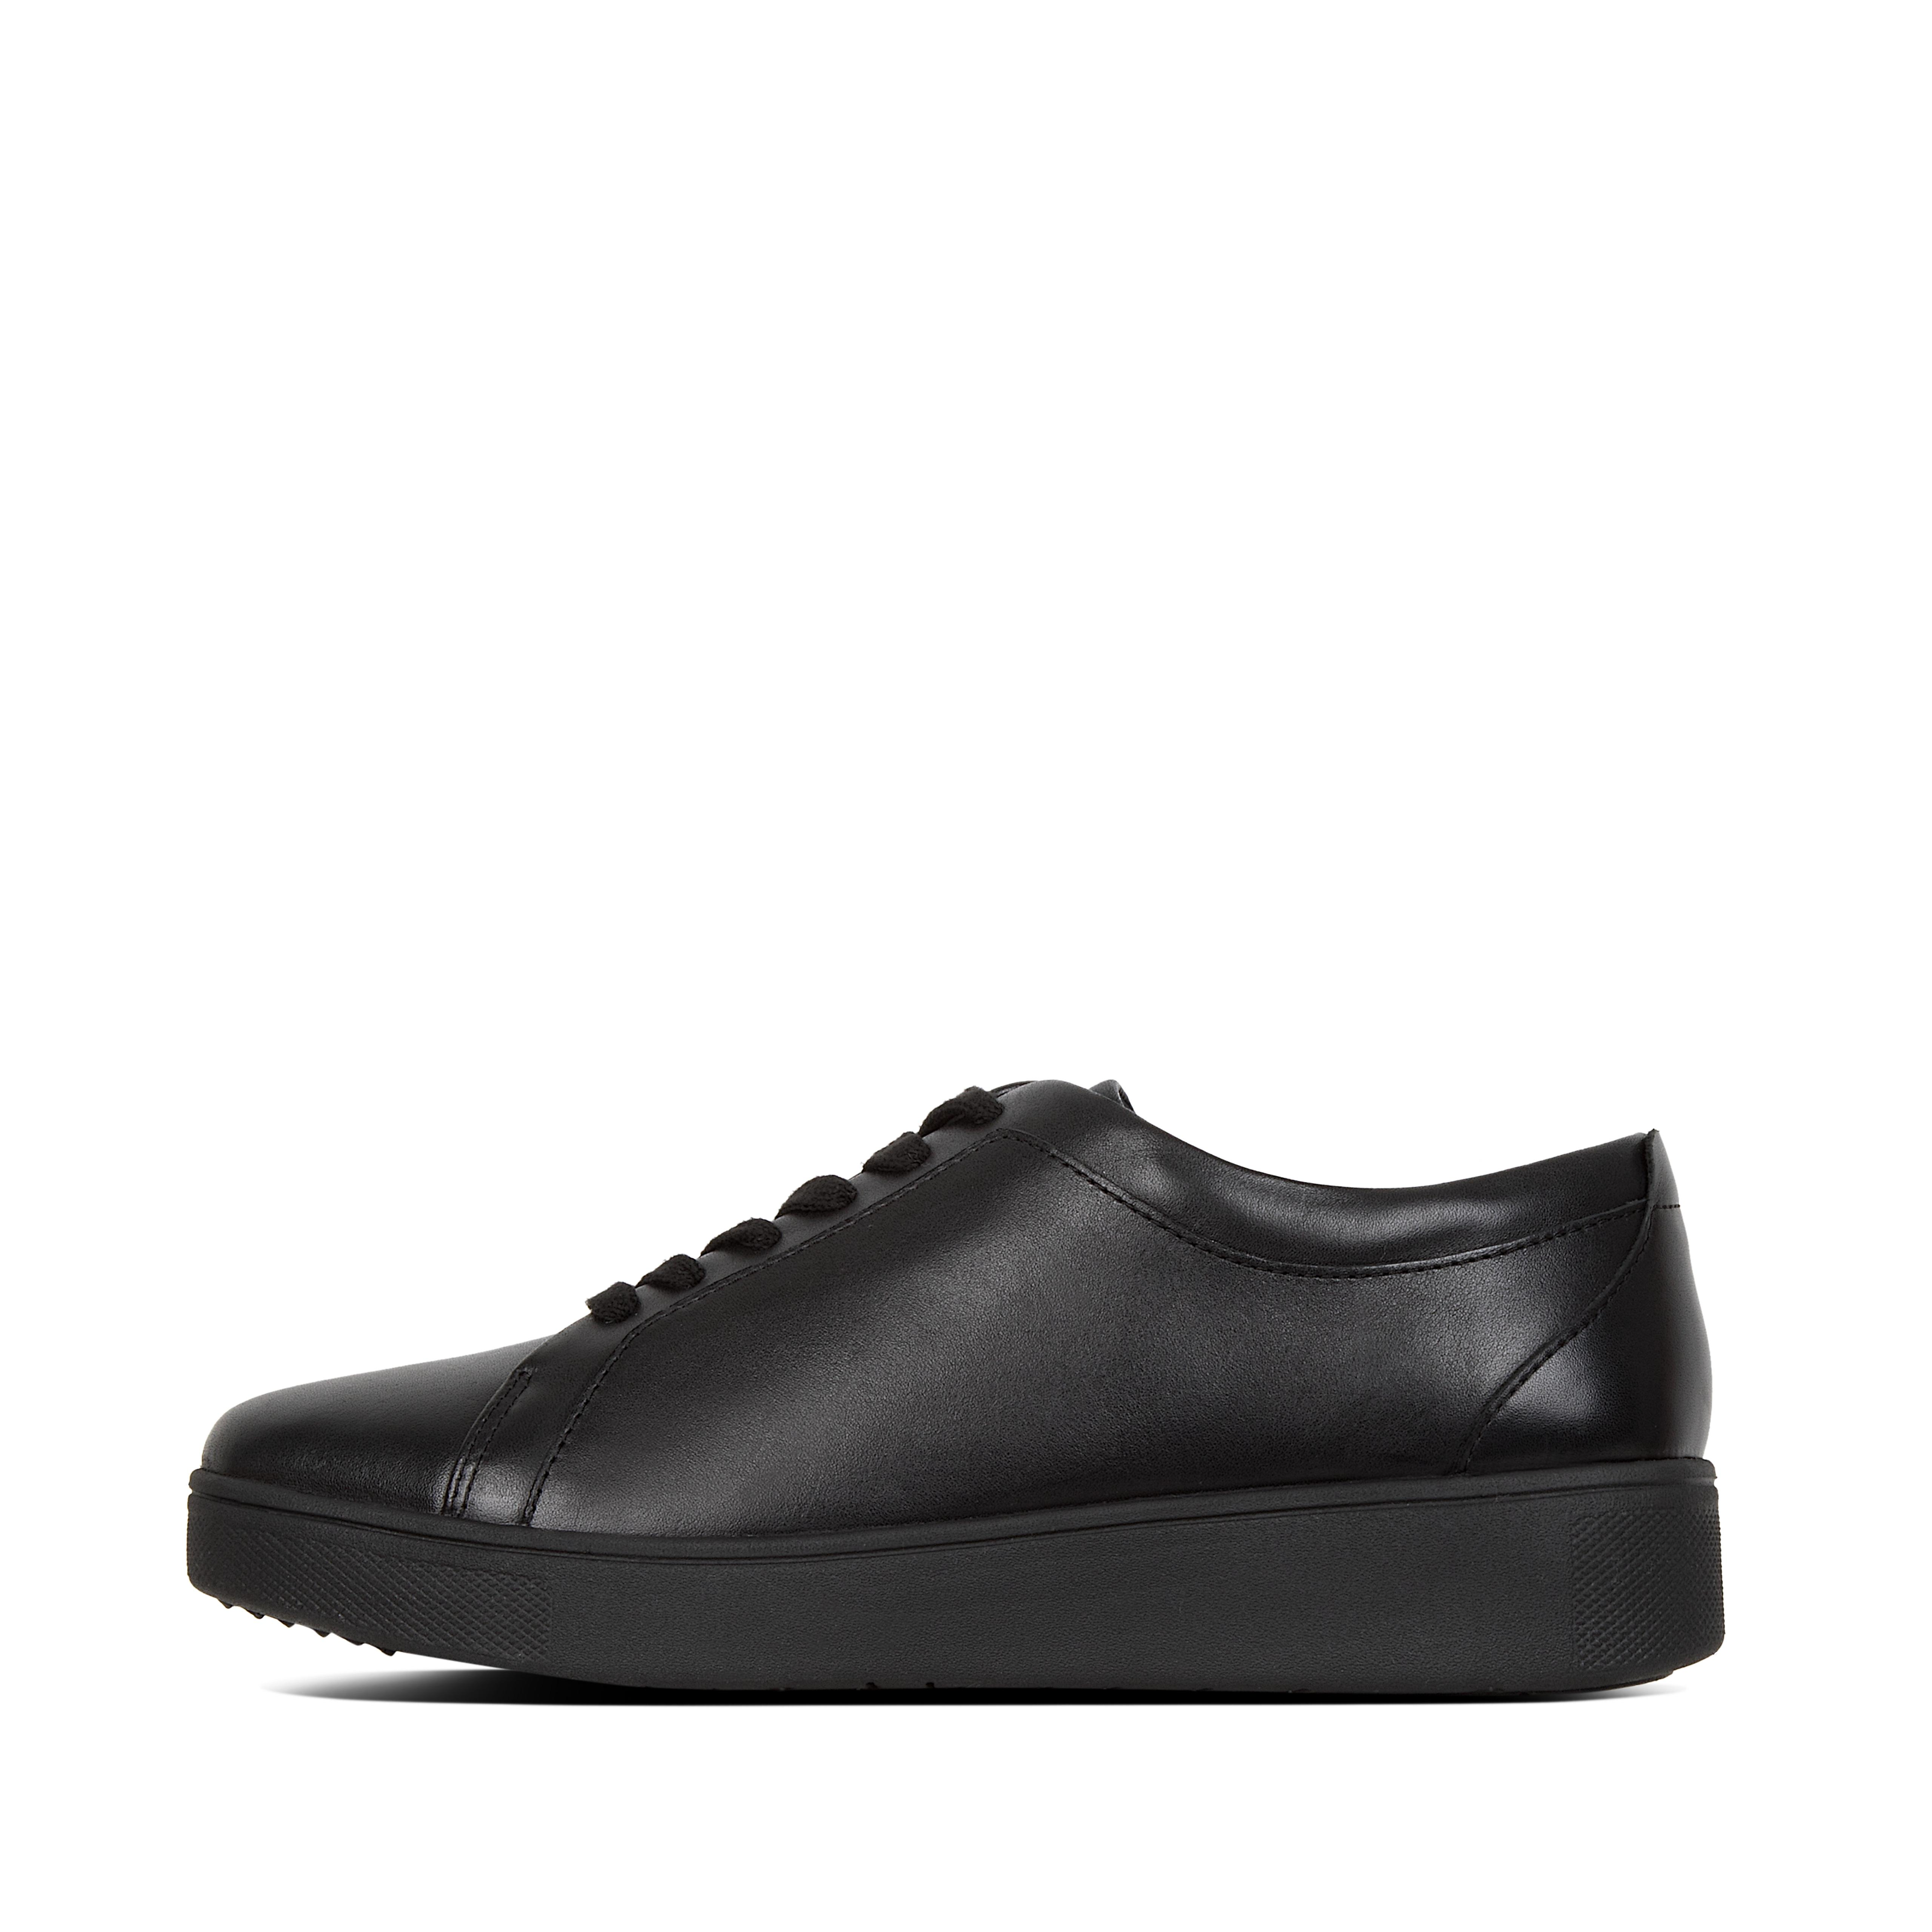 True classics. With clean styling, an old-school \\\'tennis shoe\\\' shape, and our ultra-light, flexible Anatomicush™ midsoles, these are the sneakers no woman can do without. The ones that\\\'ll work with your whole wardrobe - jeans, dresses, tailored suits - season after season. Your go-tos on busy days when comfort is non-negotiable. Life essentials.